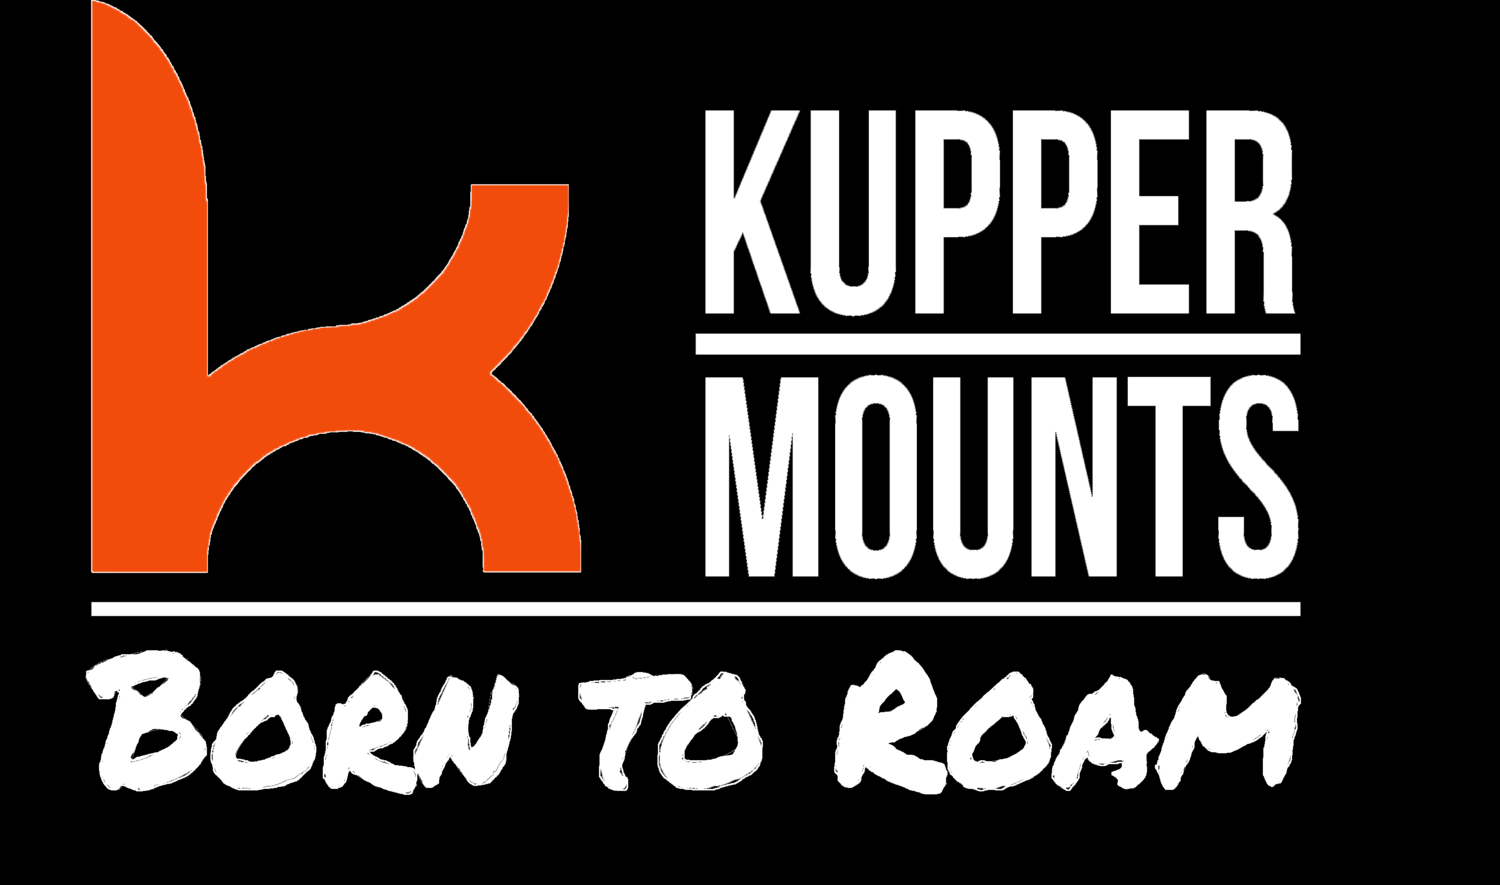 Kupper Mounts Bike Carriers - Born To Roam, Bike Worldwide!